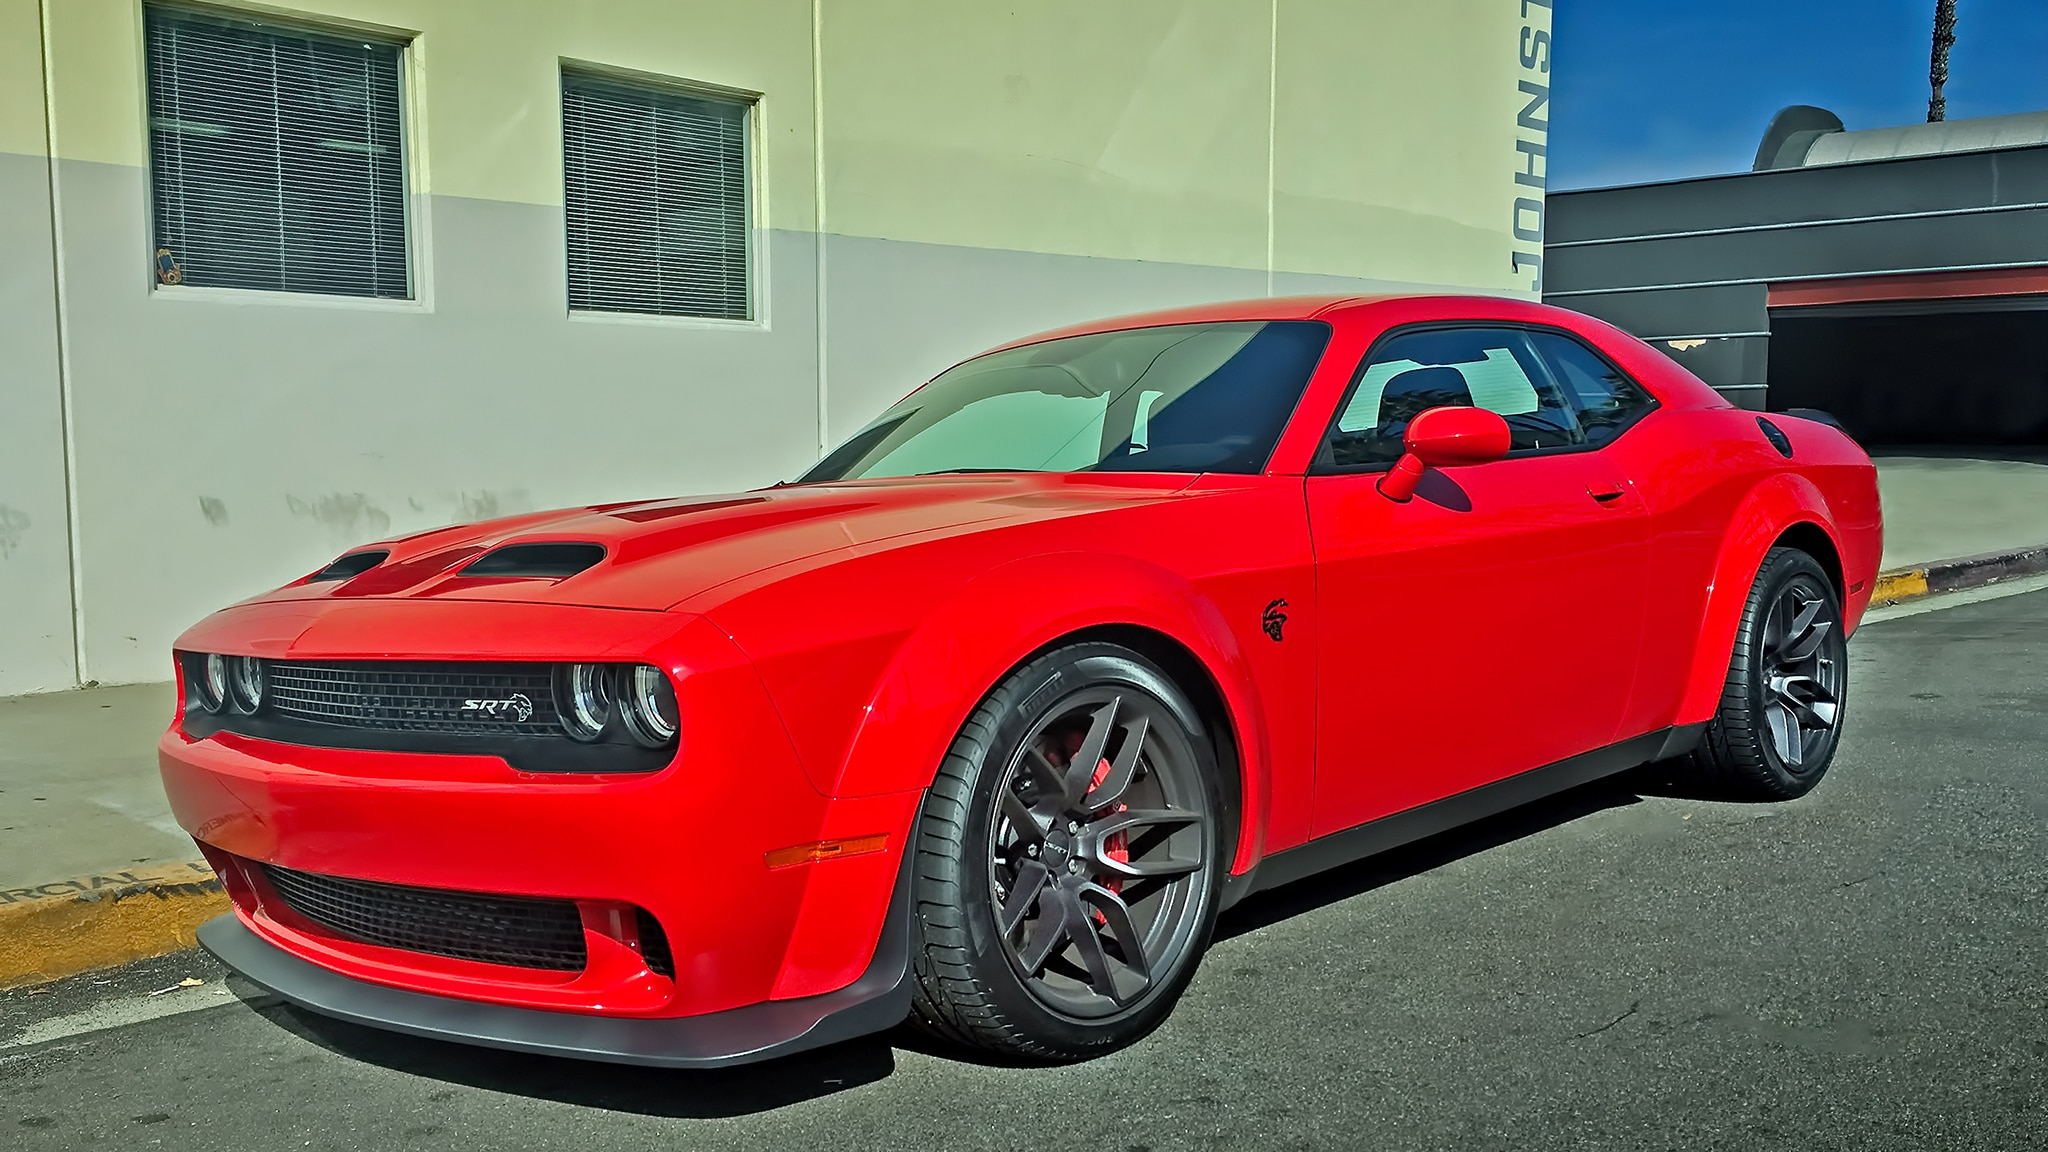 2019 Dodge Challenger Srt Hellcat Redeye One Week With The 797 Hp Insaniac Hellsled